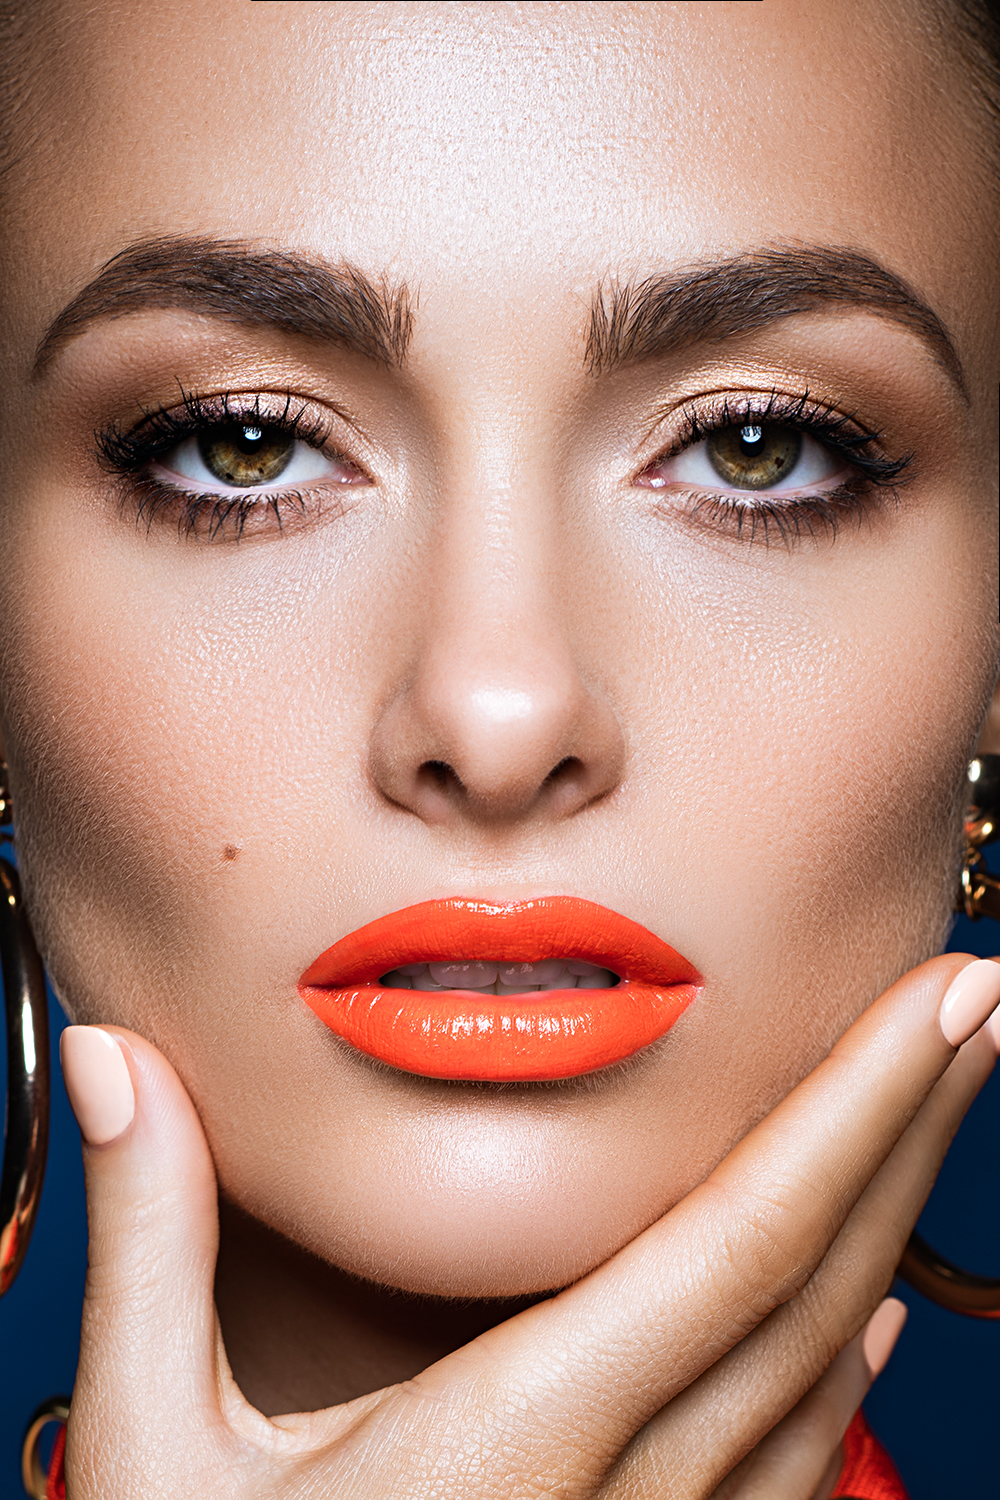 m Glowing skin orange lipstick beauty editorial.jpg